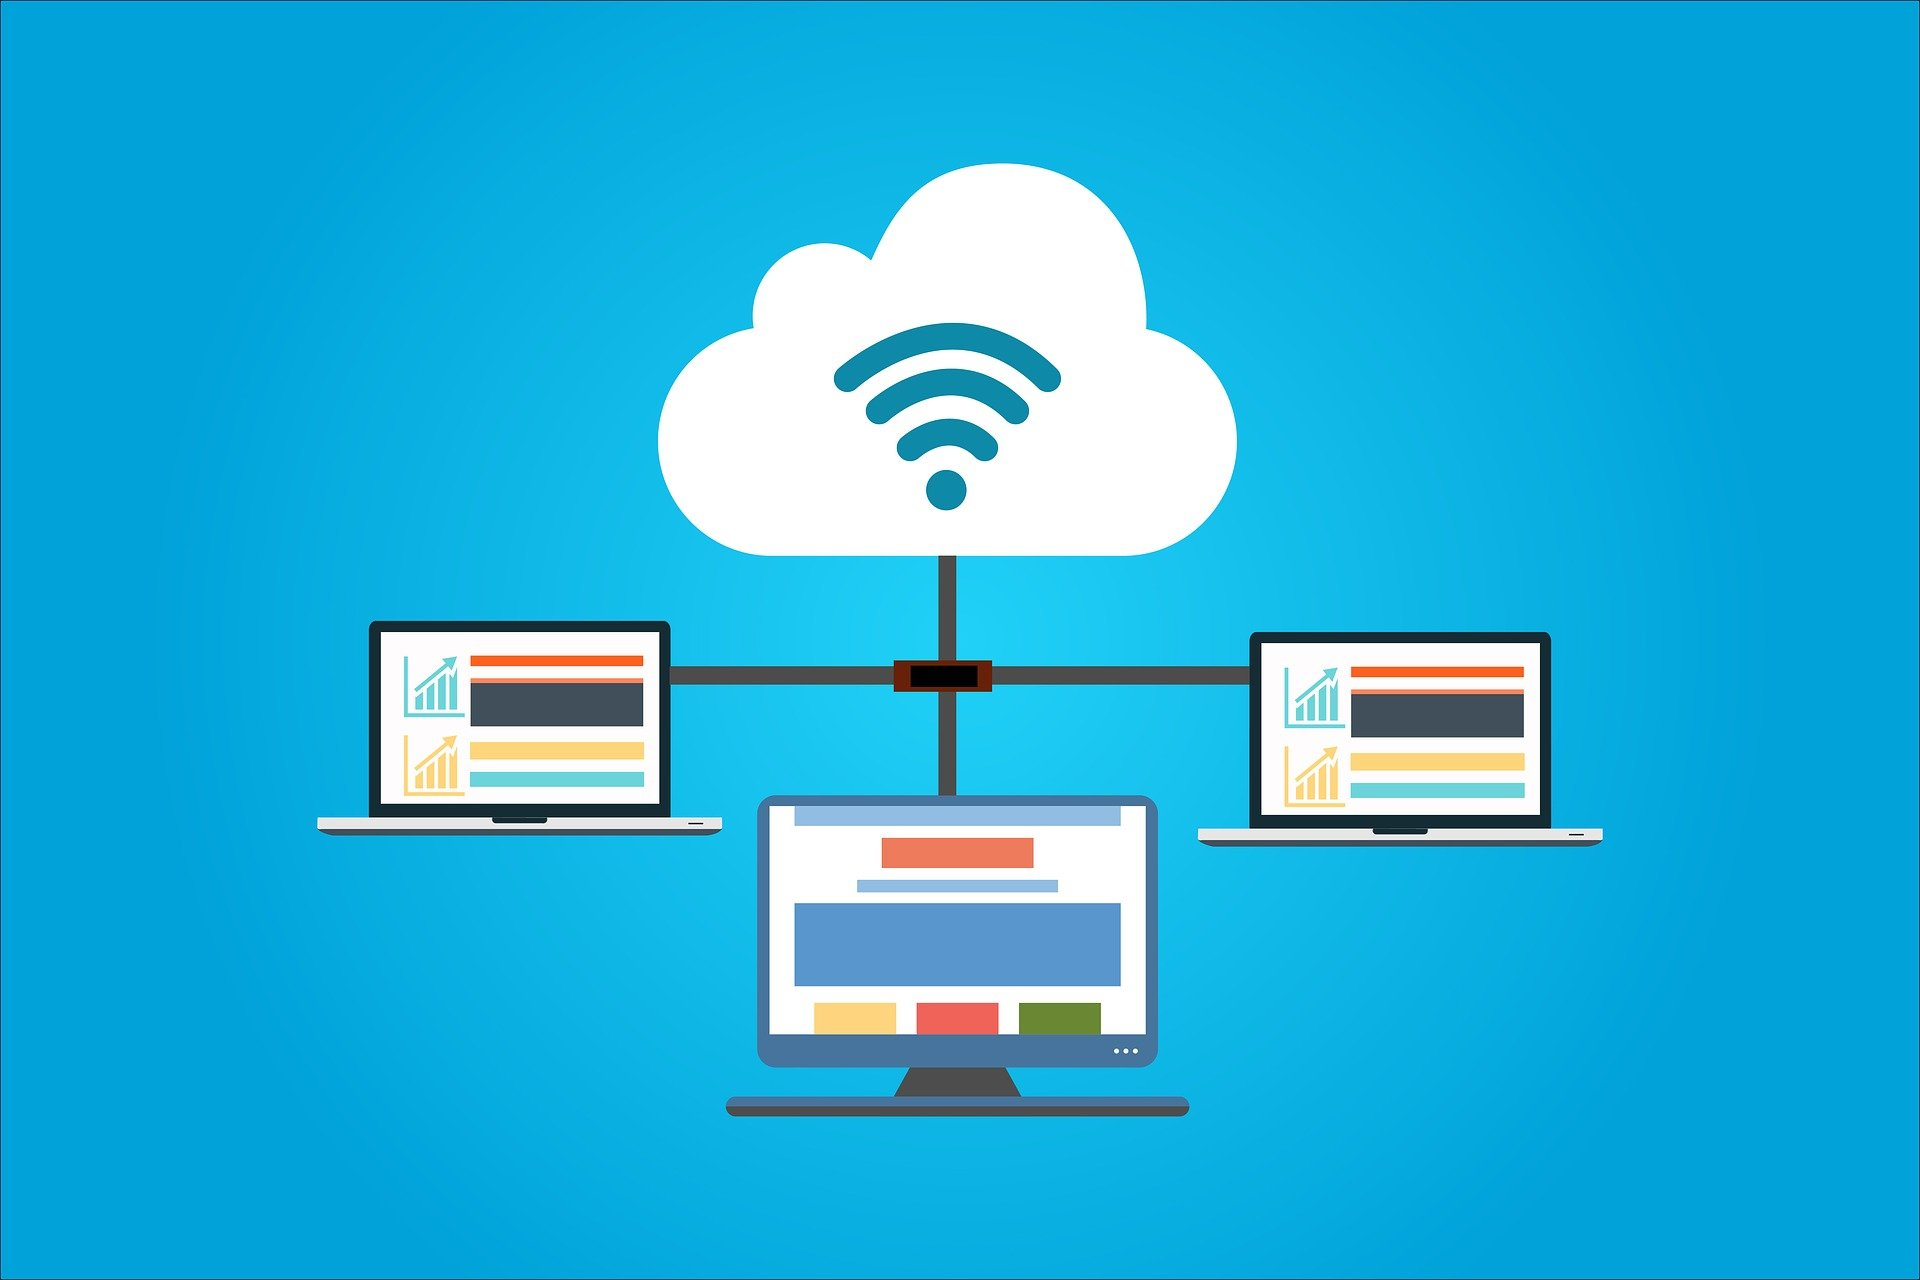 Migrating to the Cloud & the Underlying Benefits Leading to Increased Efficiency